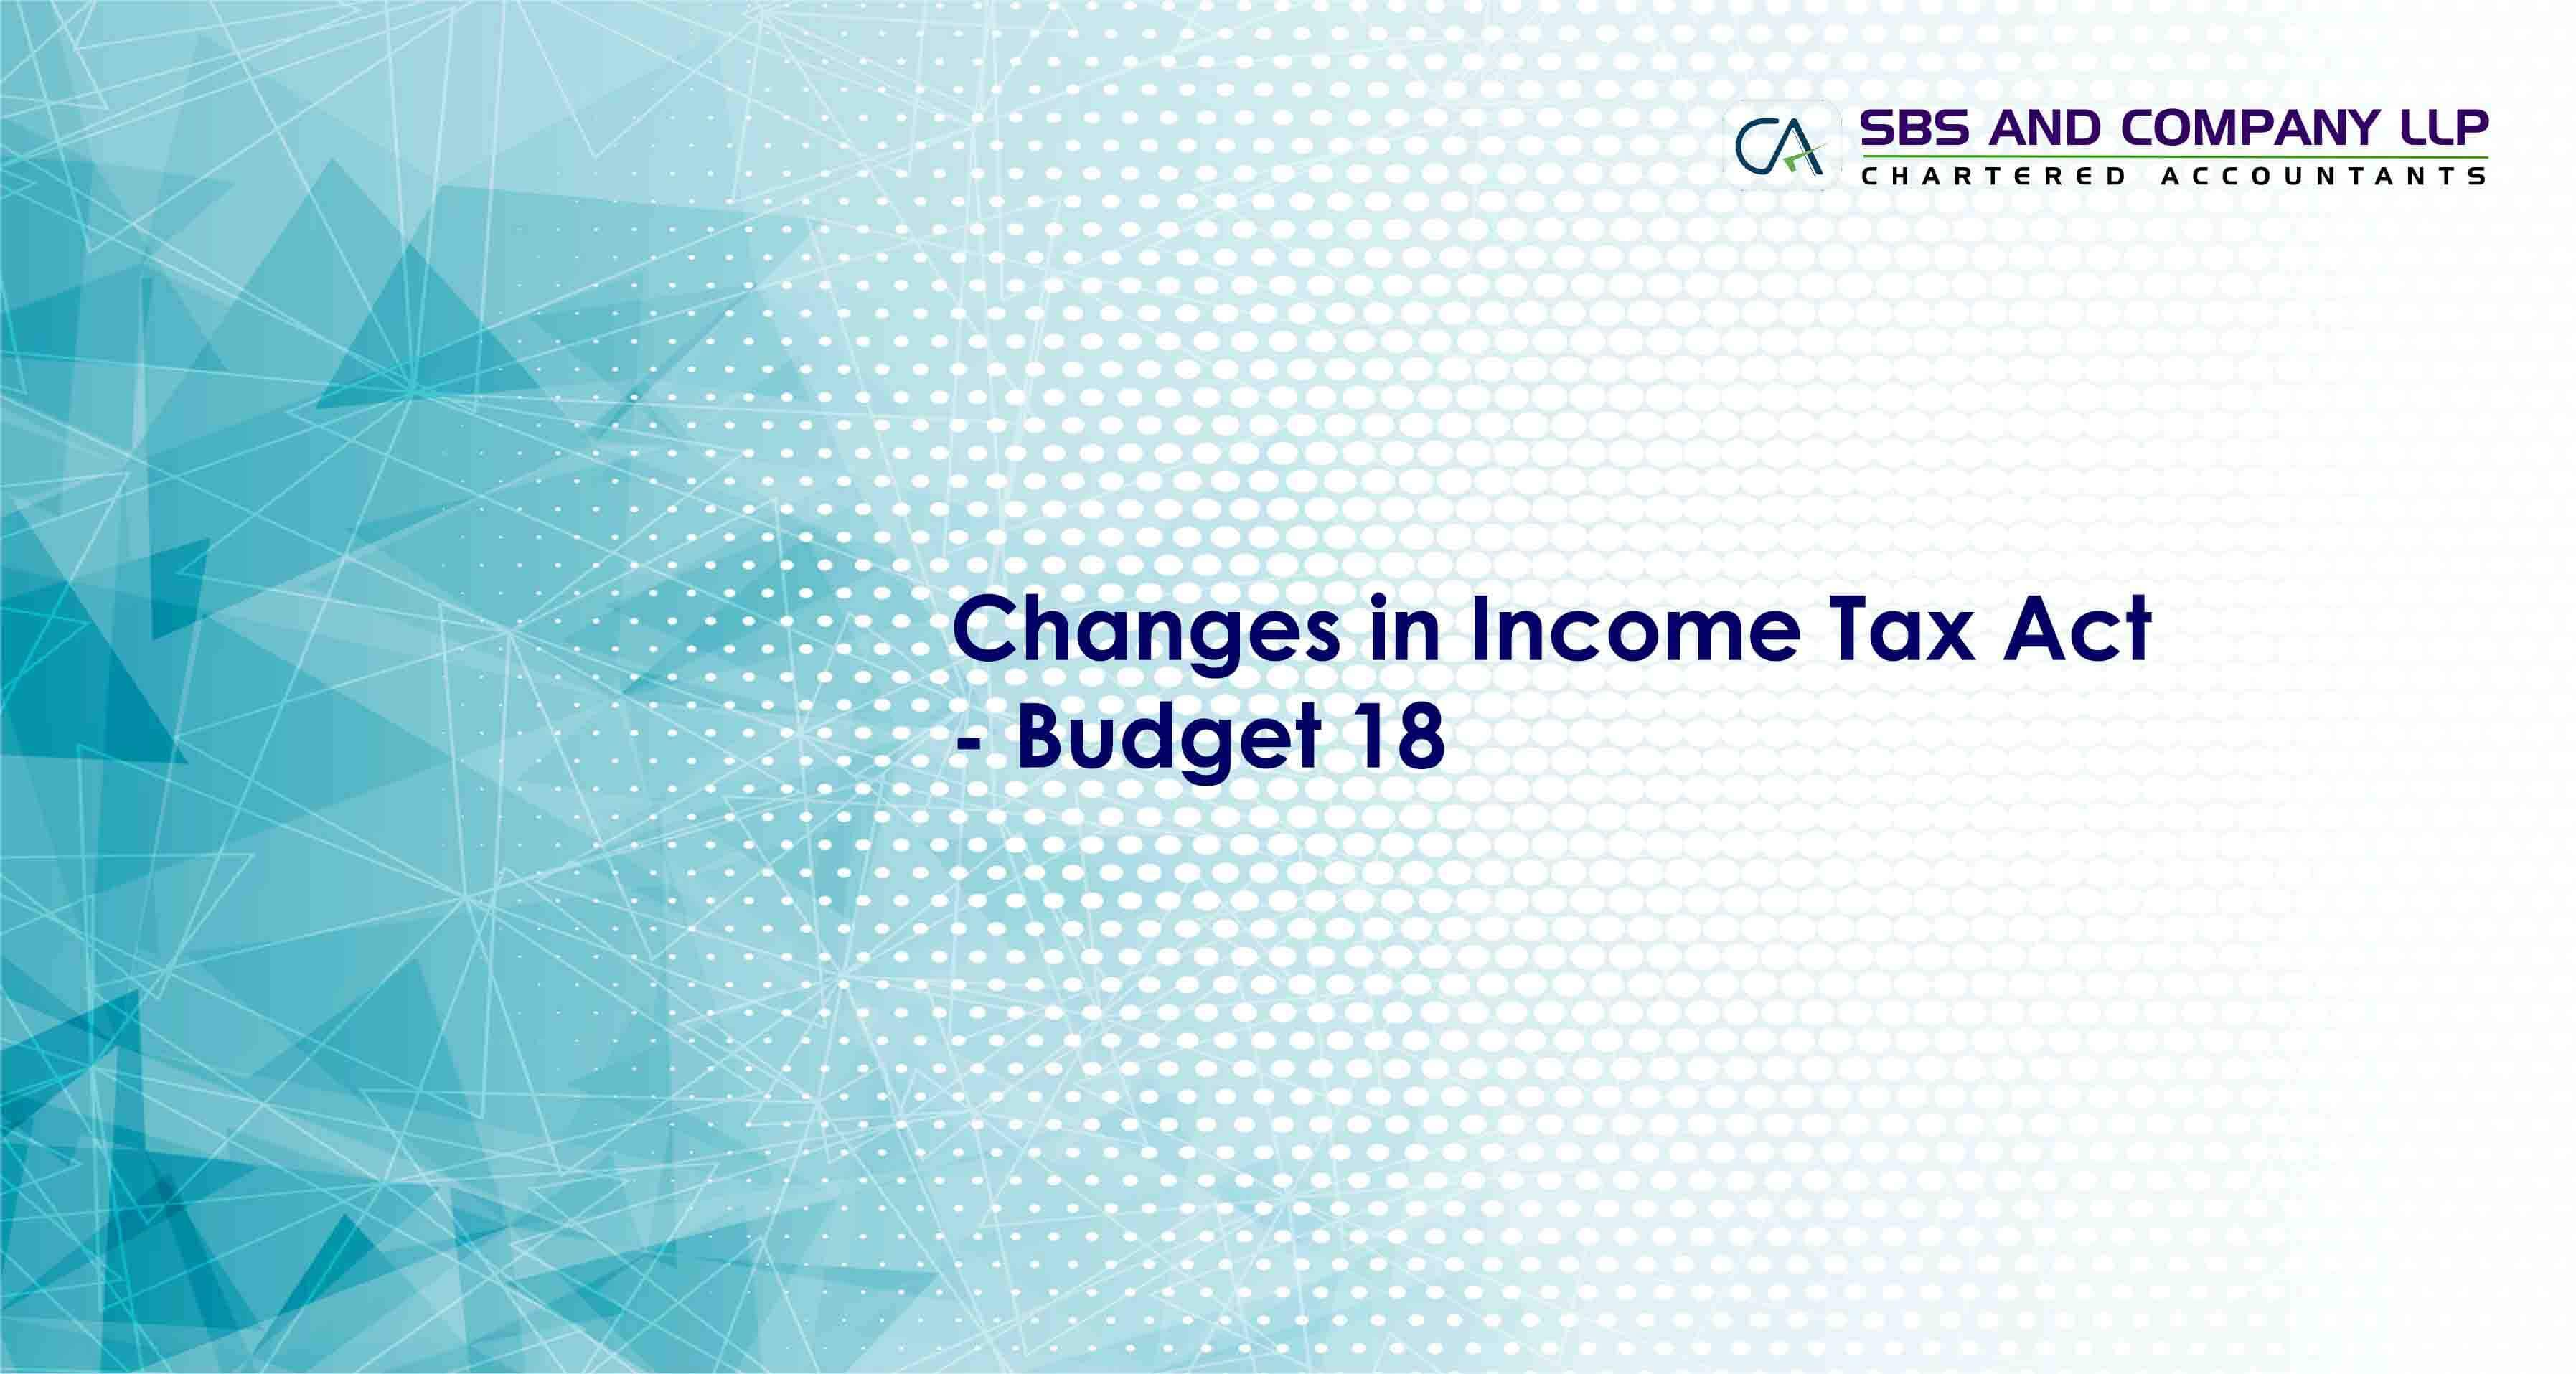 Changes in Income Tax Act - Budget 18